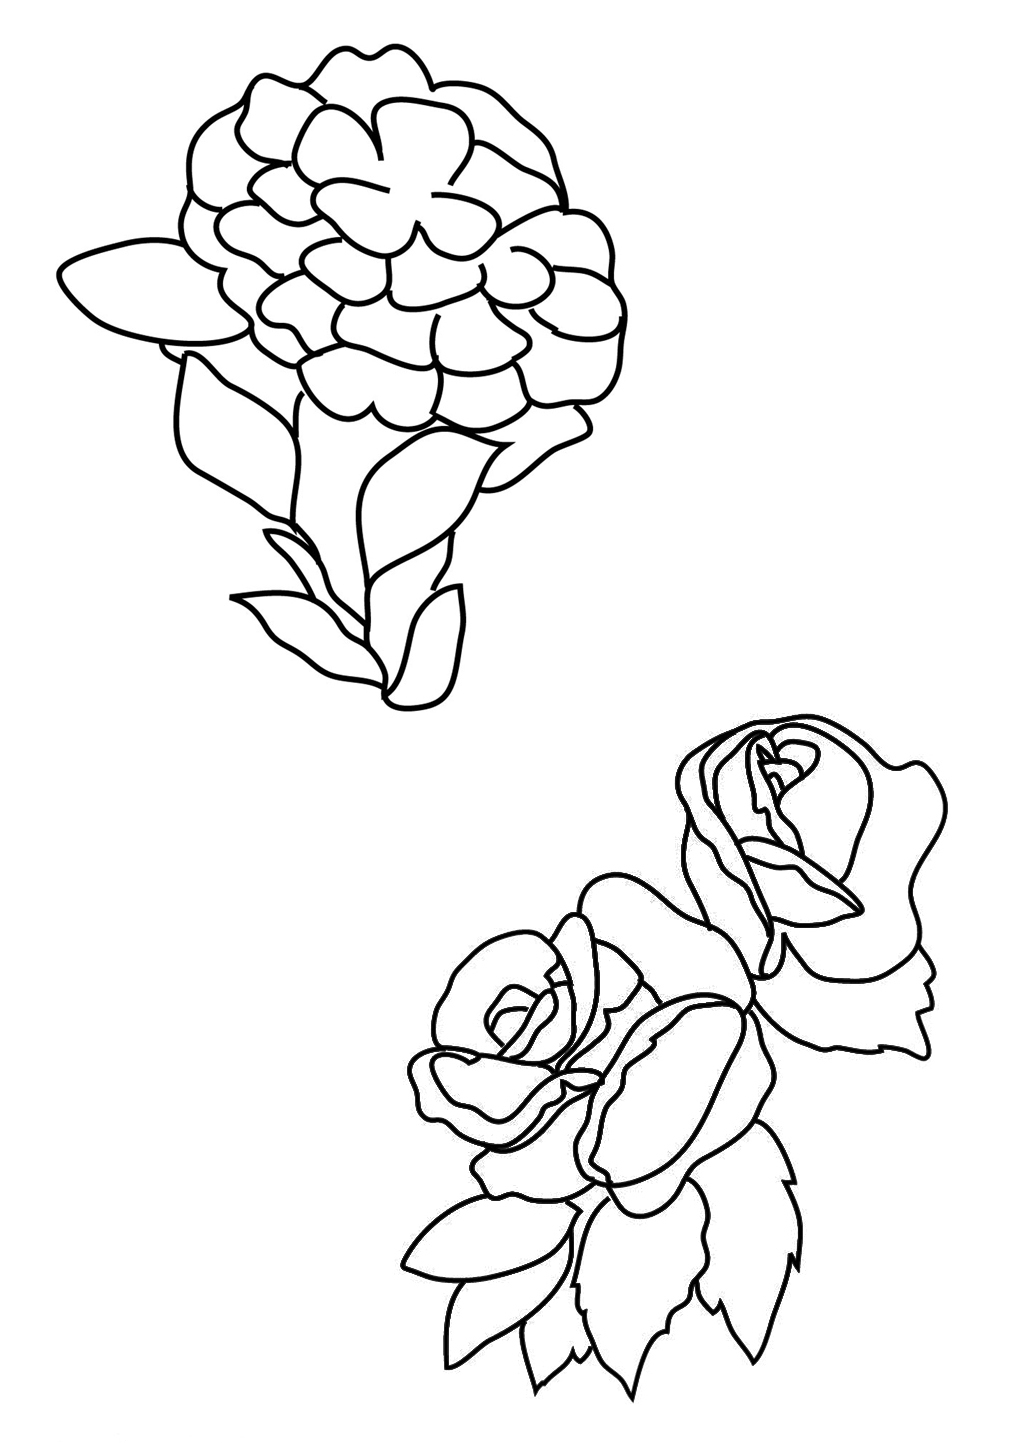 Roses And Hearts Coloring Pages Growth Coloring Pages Of Rose Flower